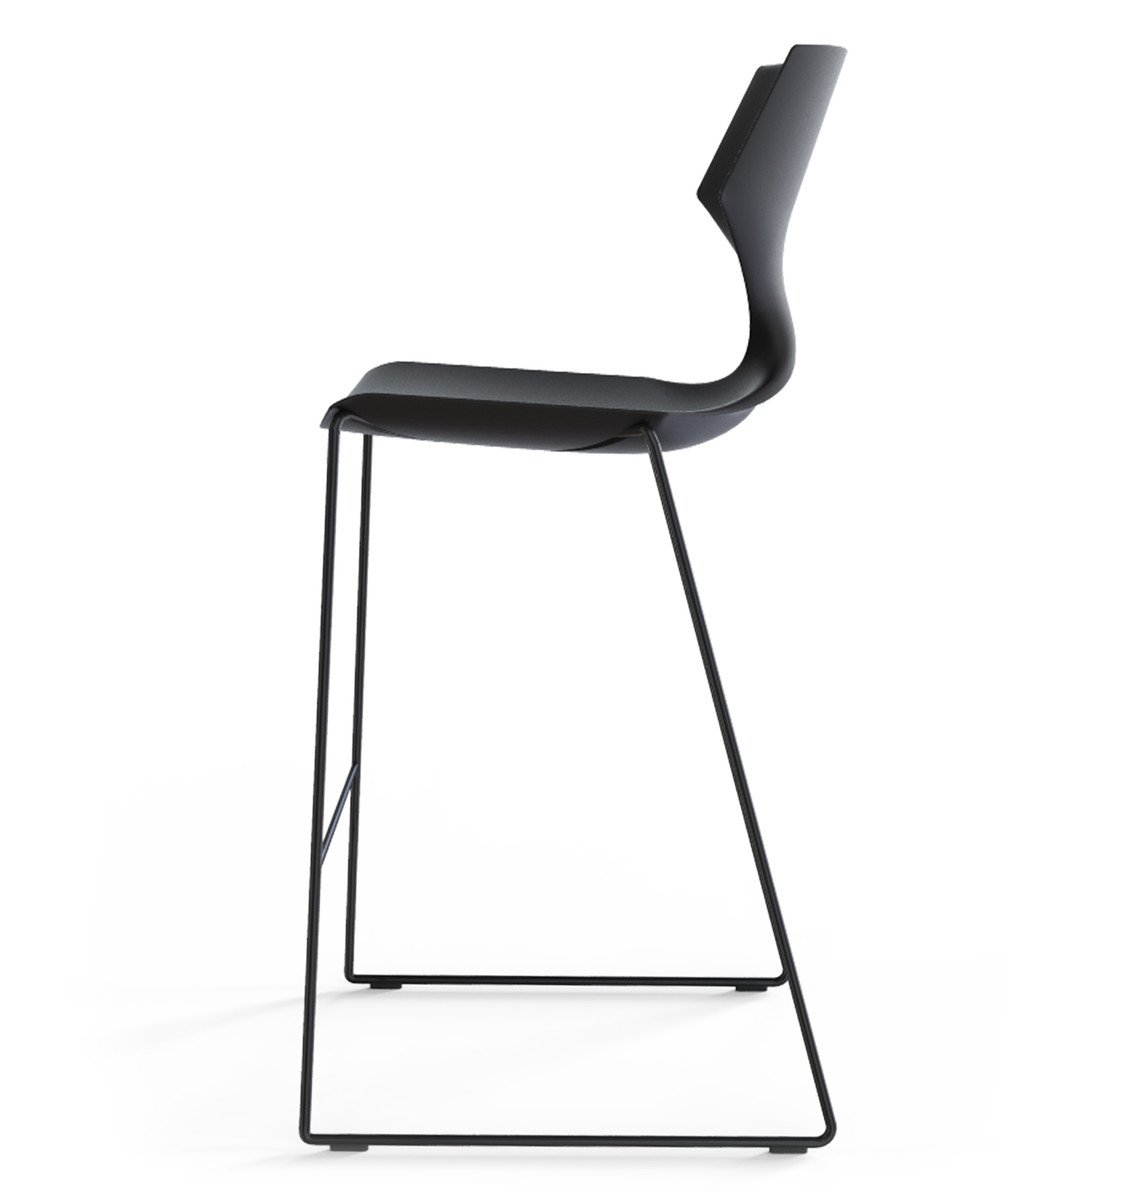 Quo Stool from Tonon, designed by Martin Ballendat